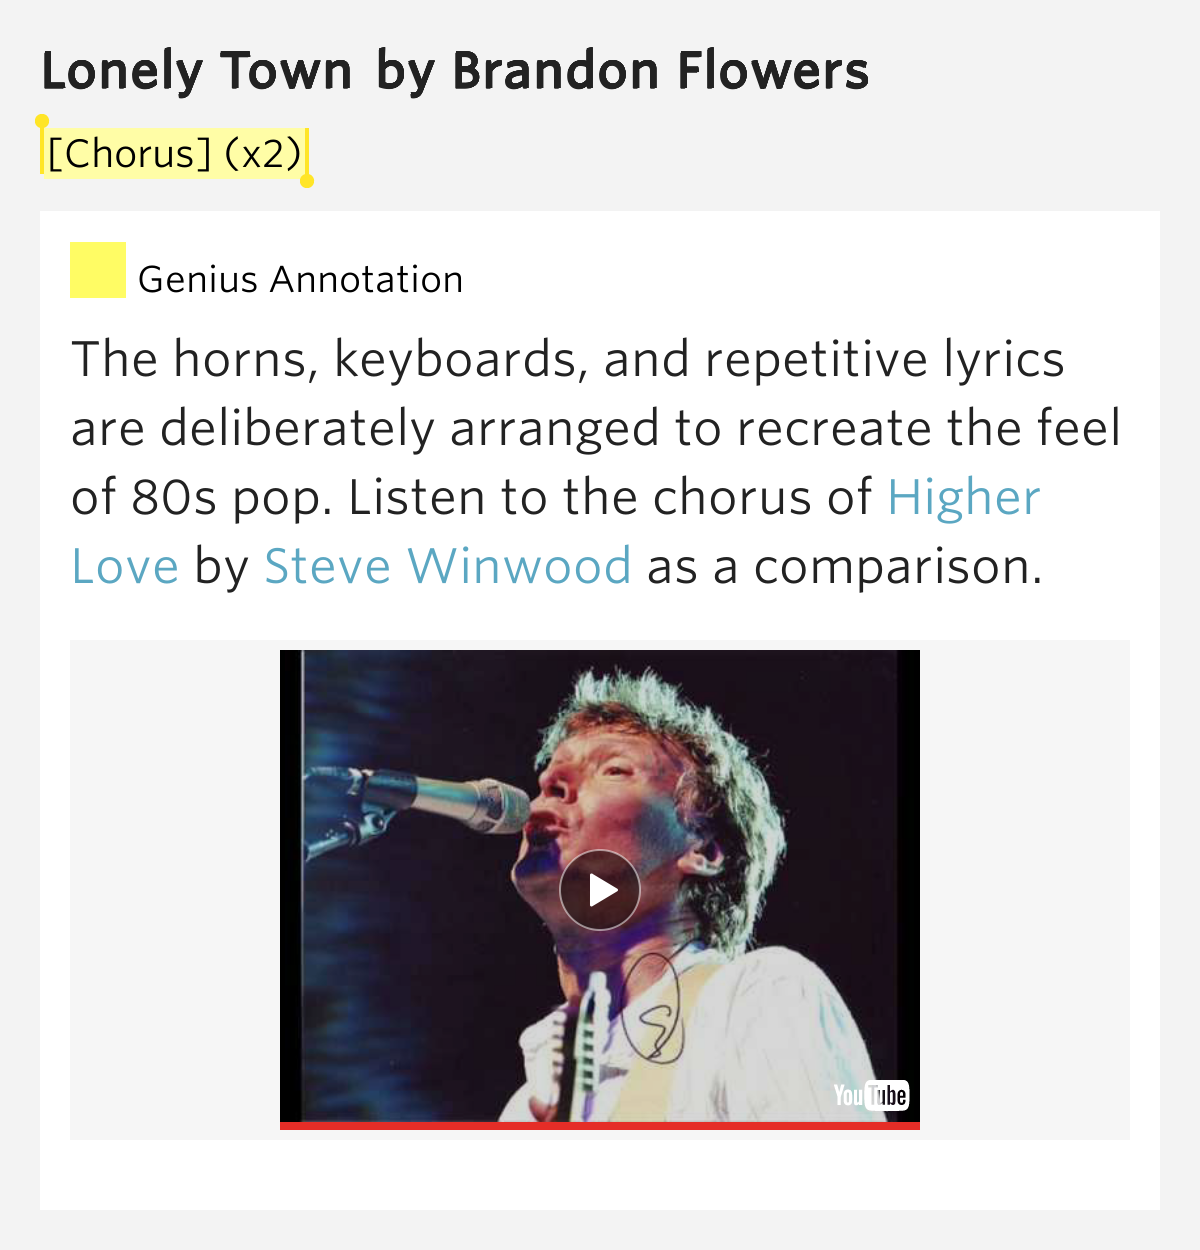 [Chorus] (x2) – Lonely Town by Brandon Flowers